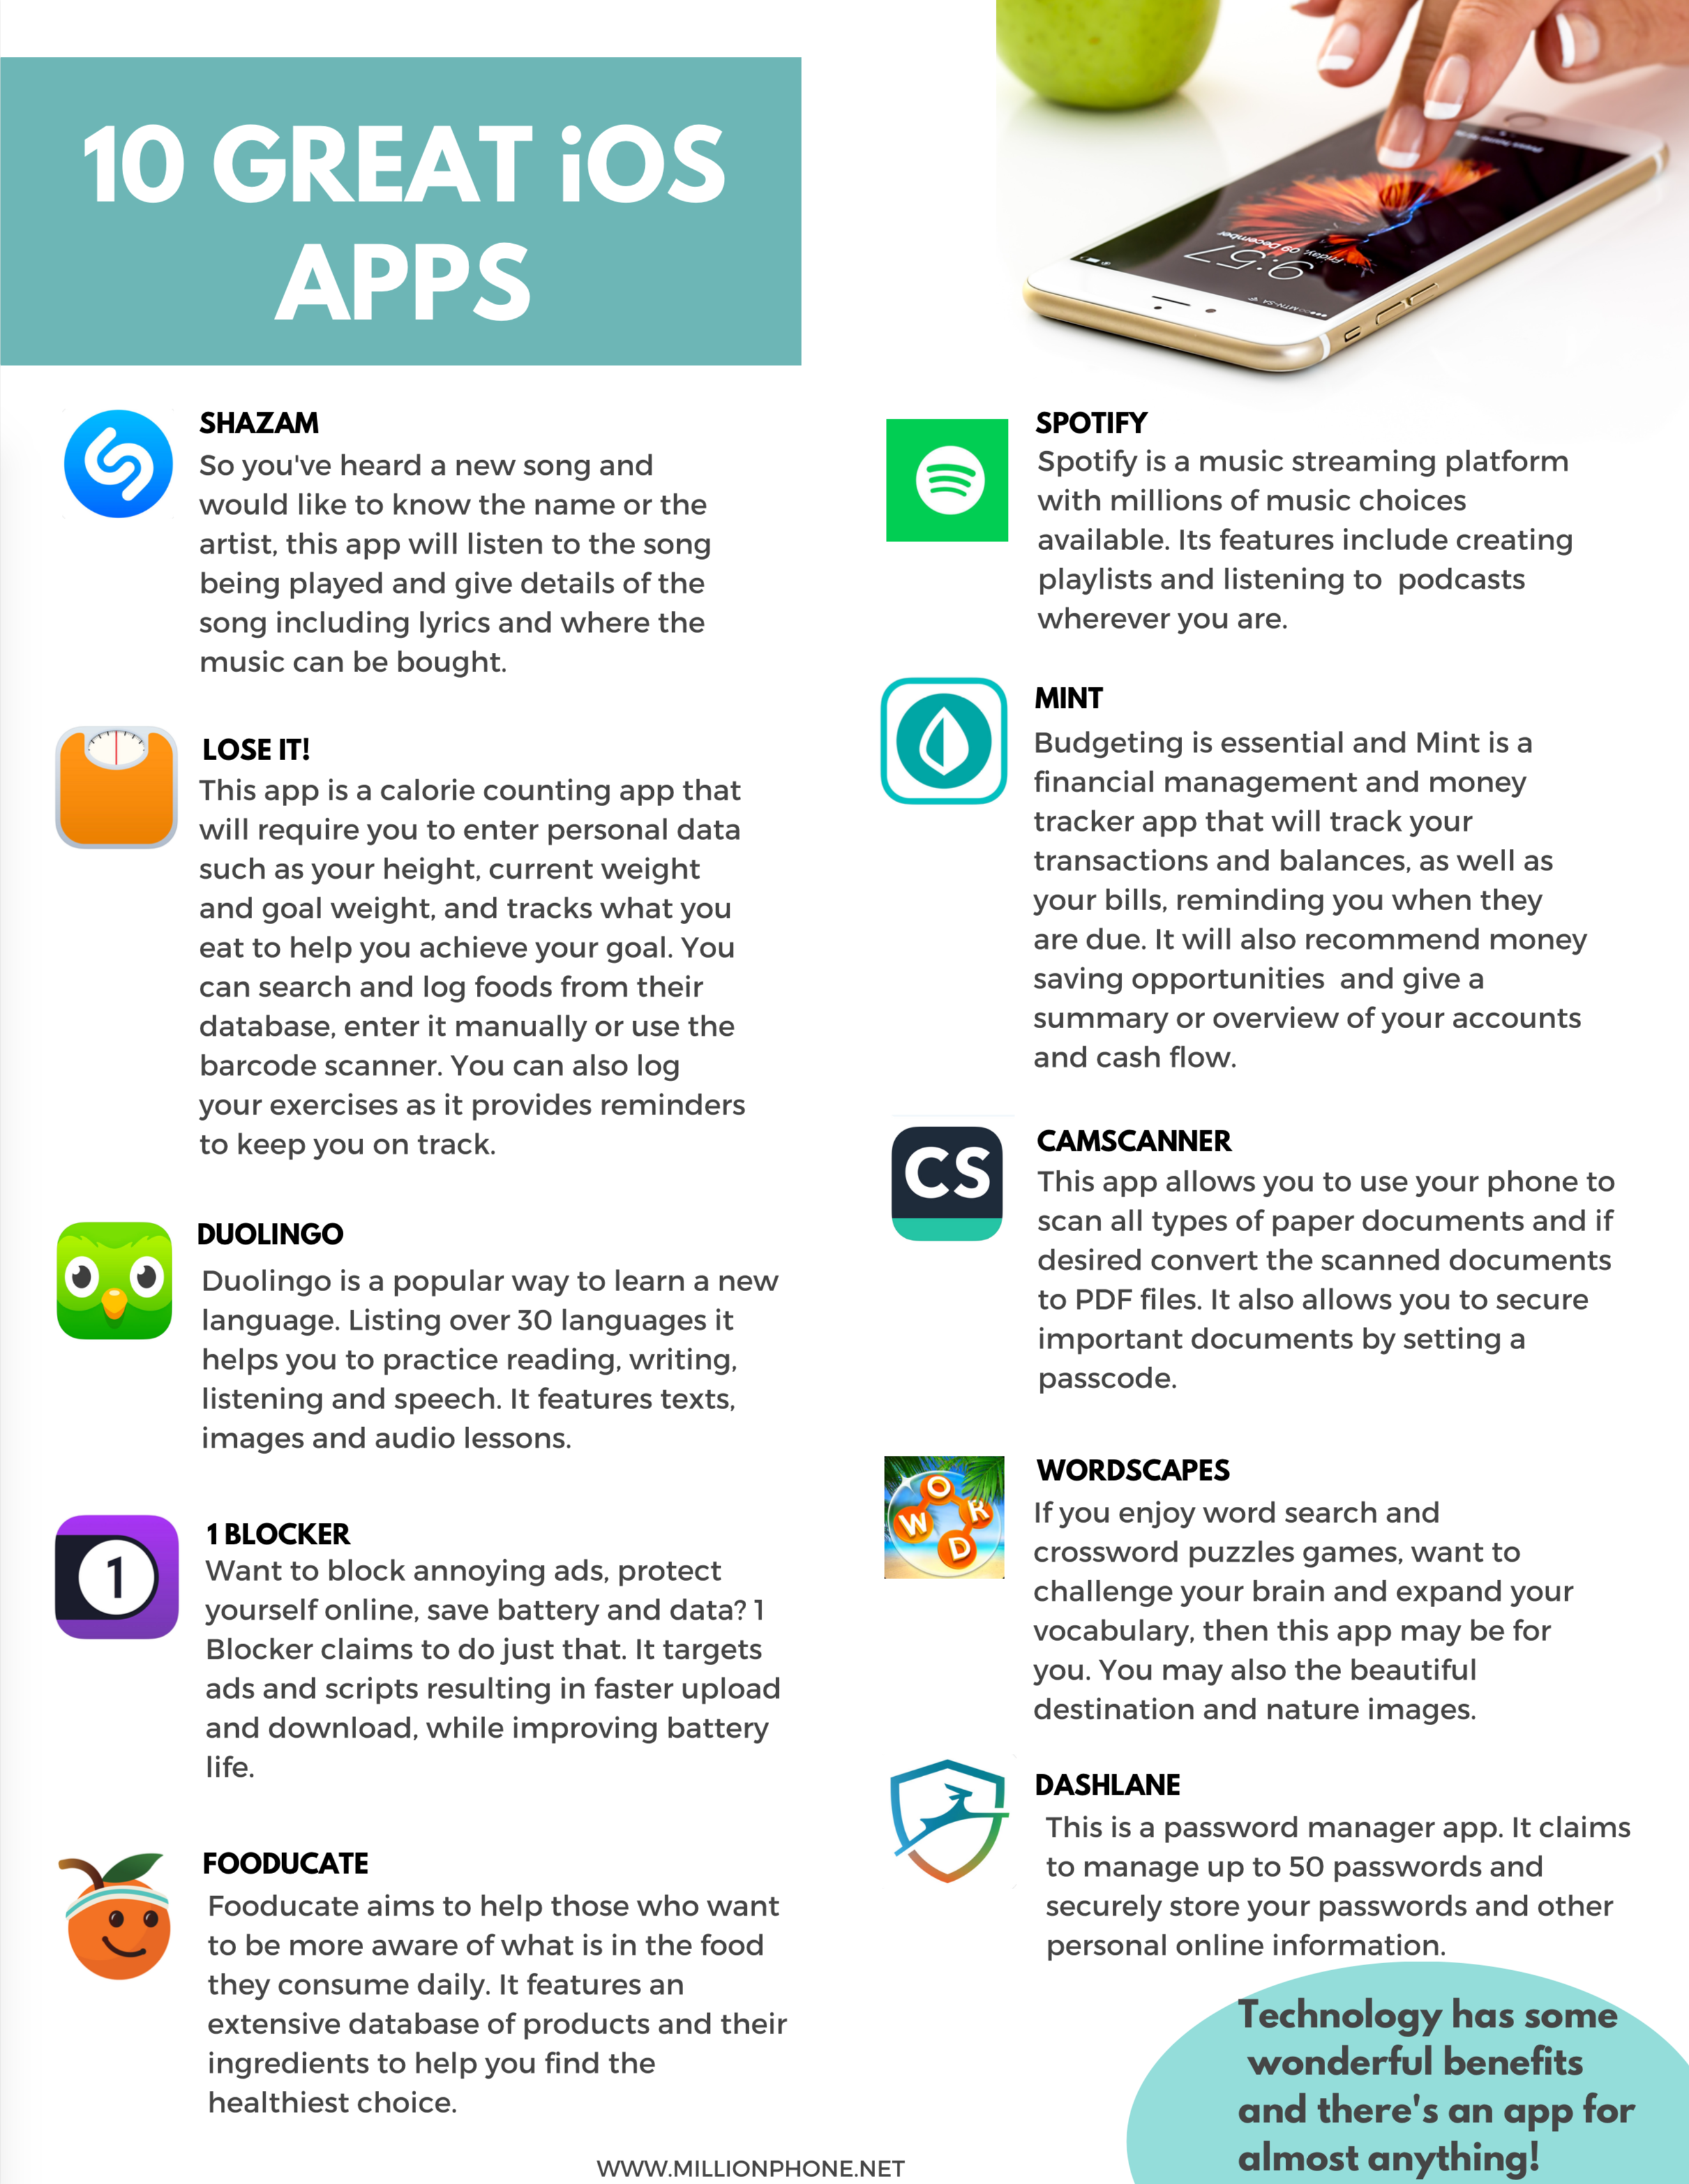 10 great iOS Apps